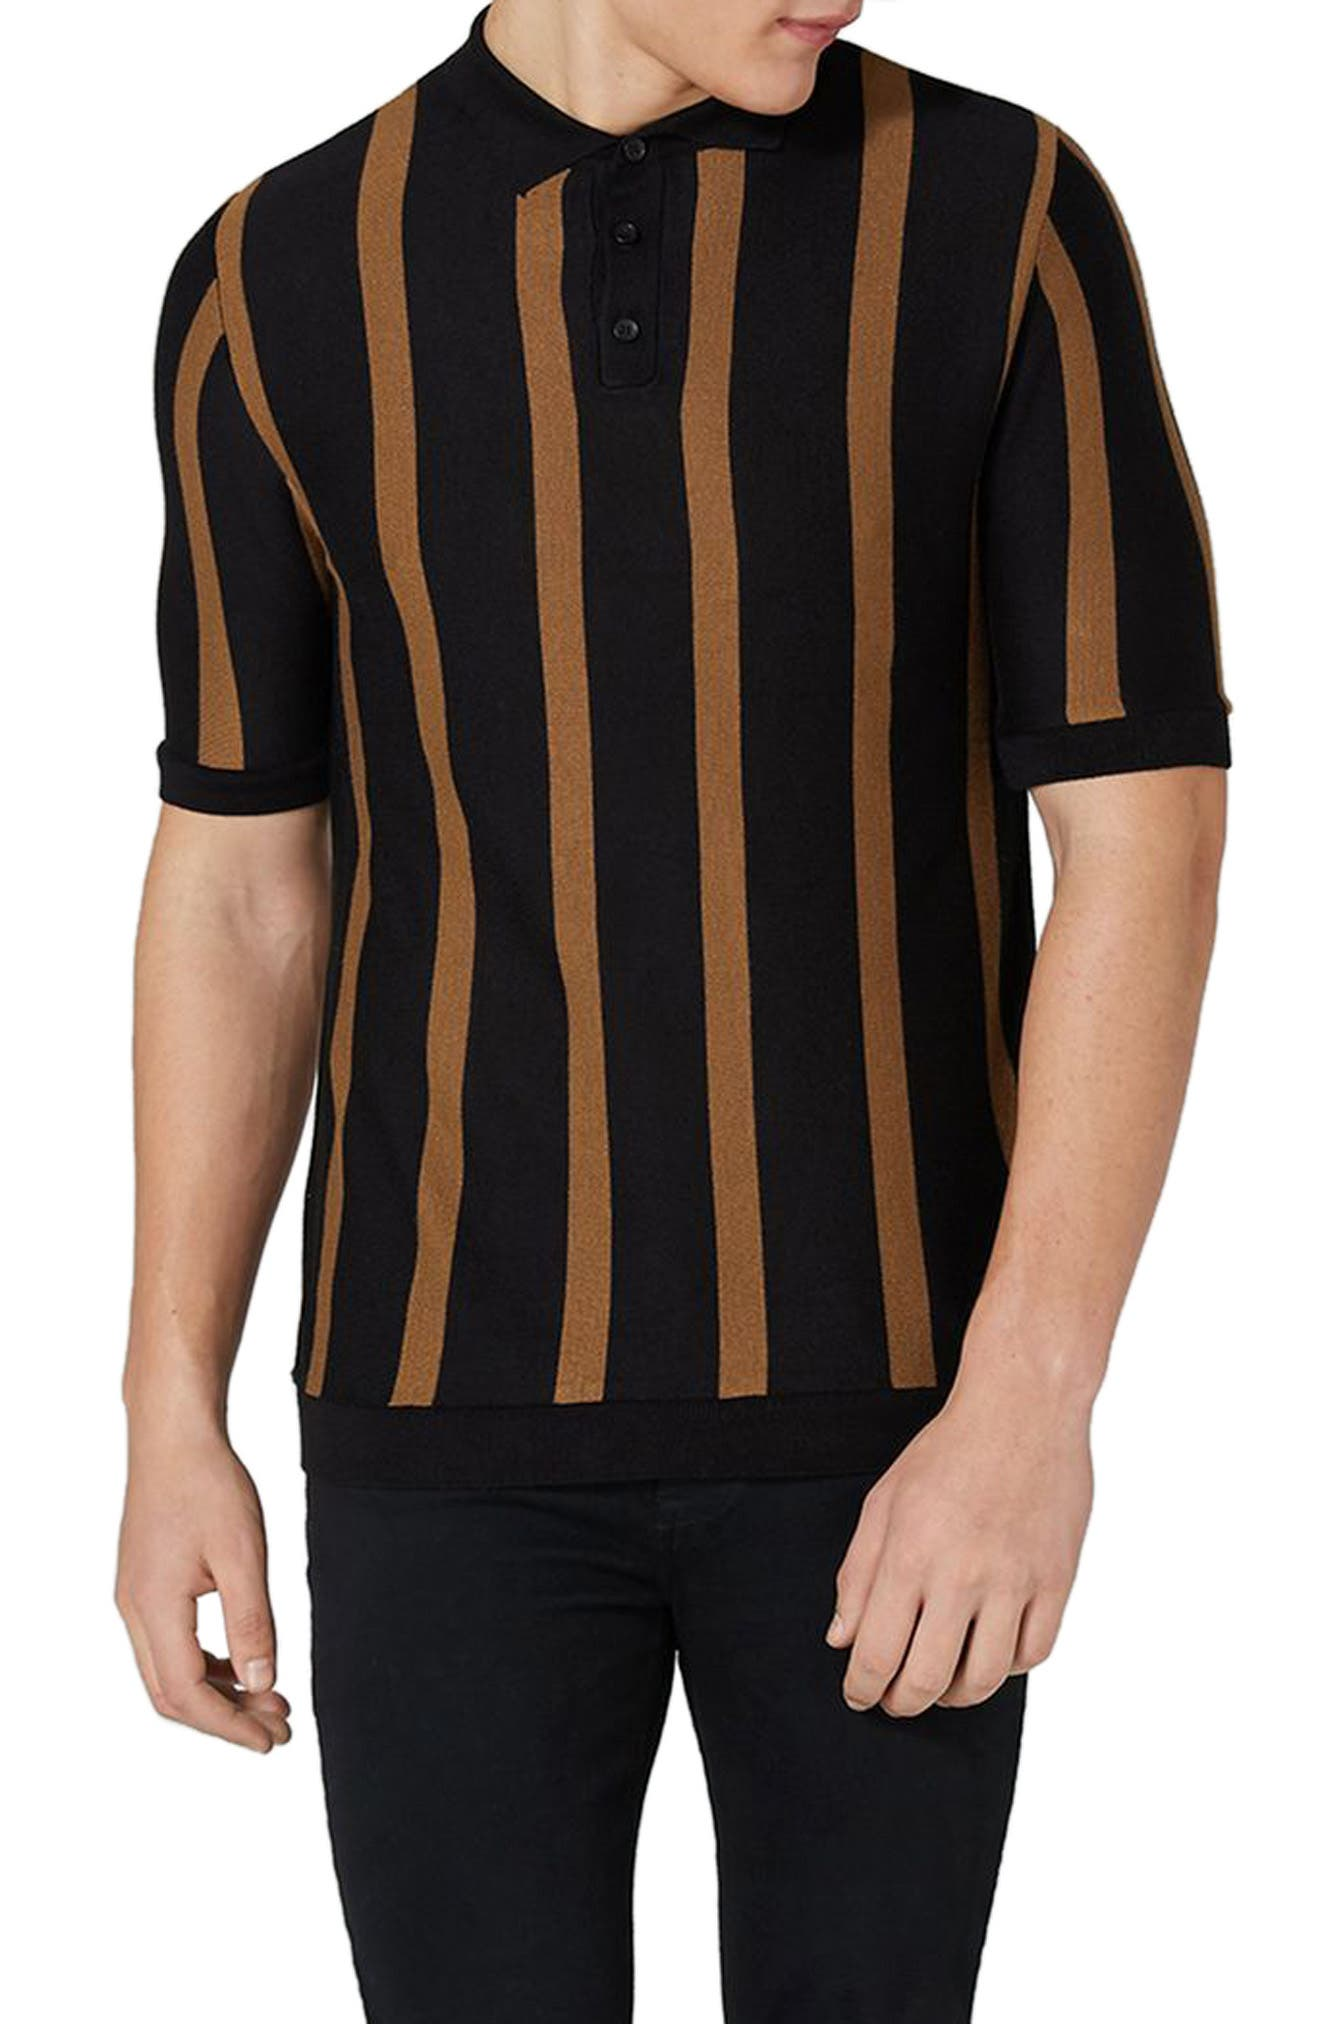 Topman Trim Fit Stripe Knit Polo